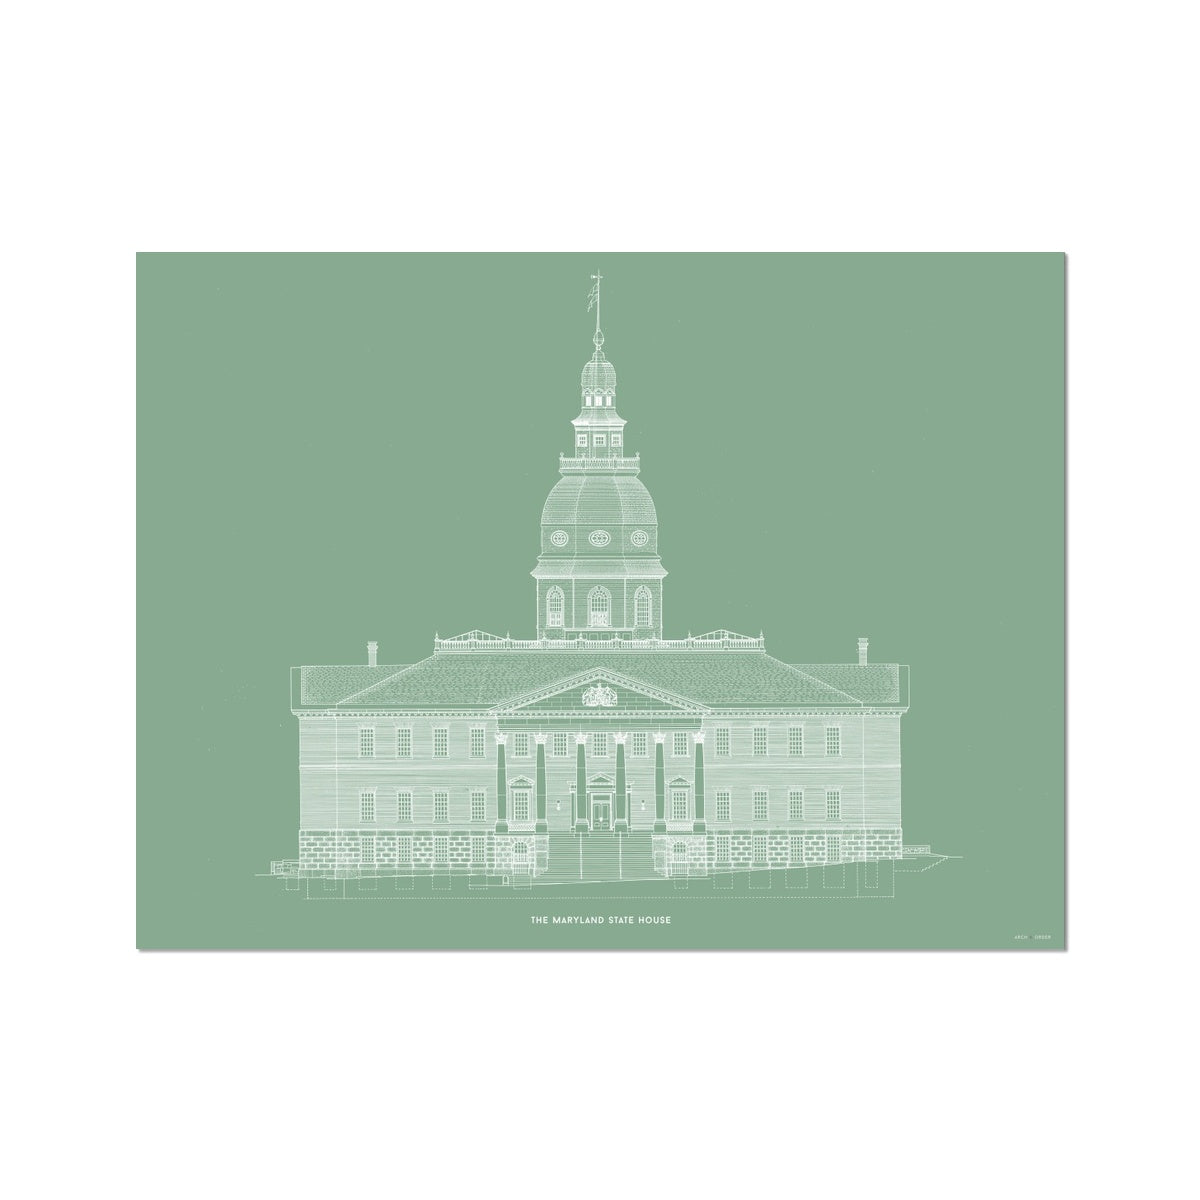 The Maryland State House - Northwest Elevation - Green -  Etching Paper Print